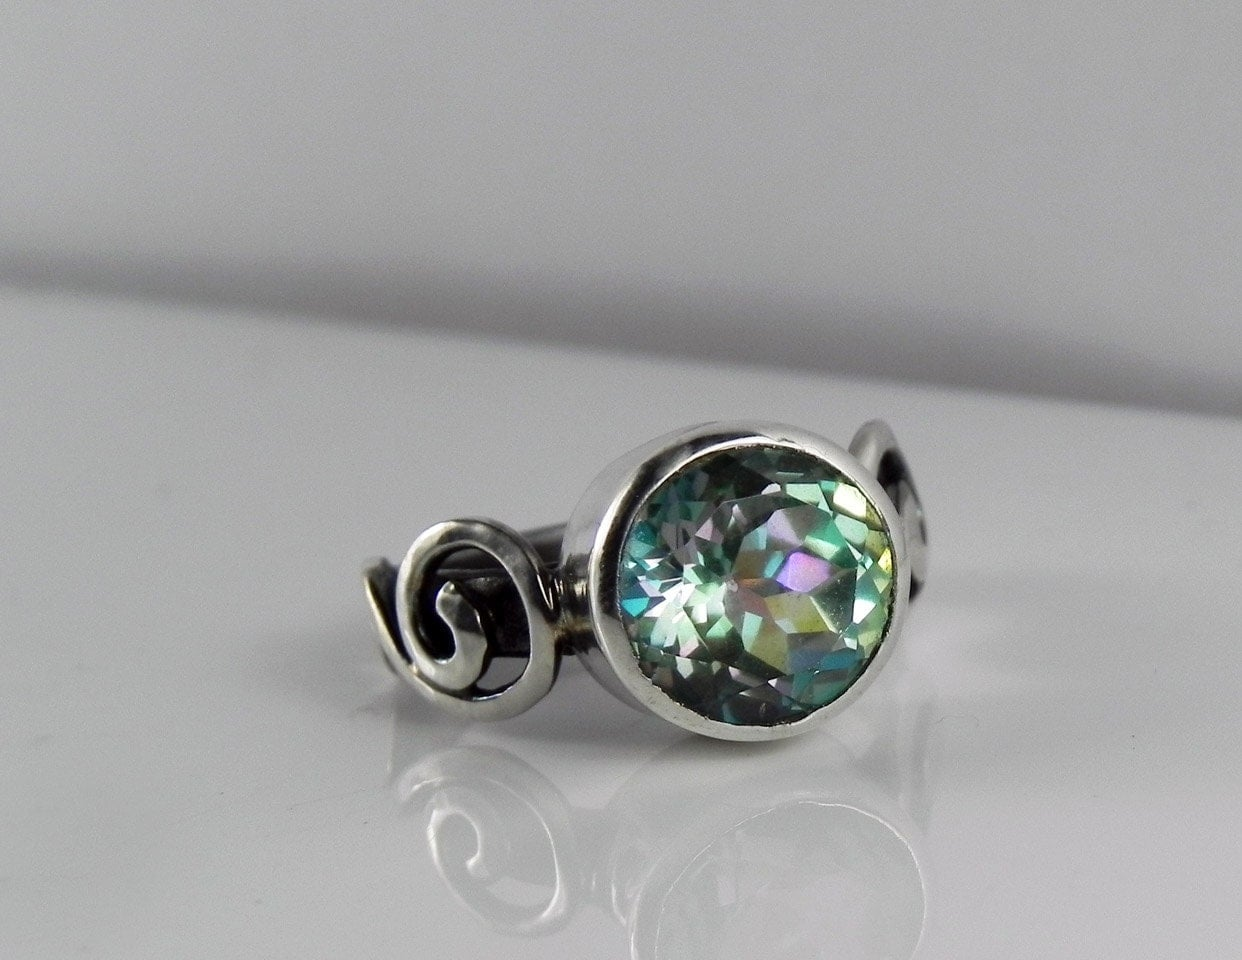 mystic topaz engagement ring unique alternative wedding ring